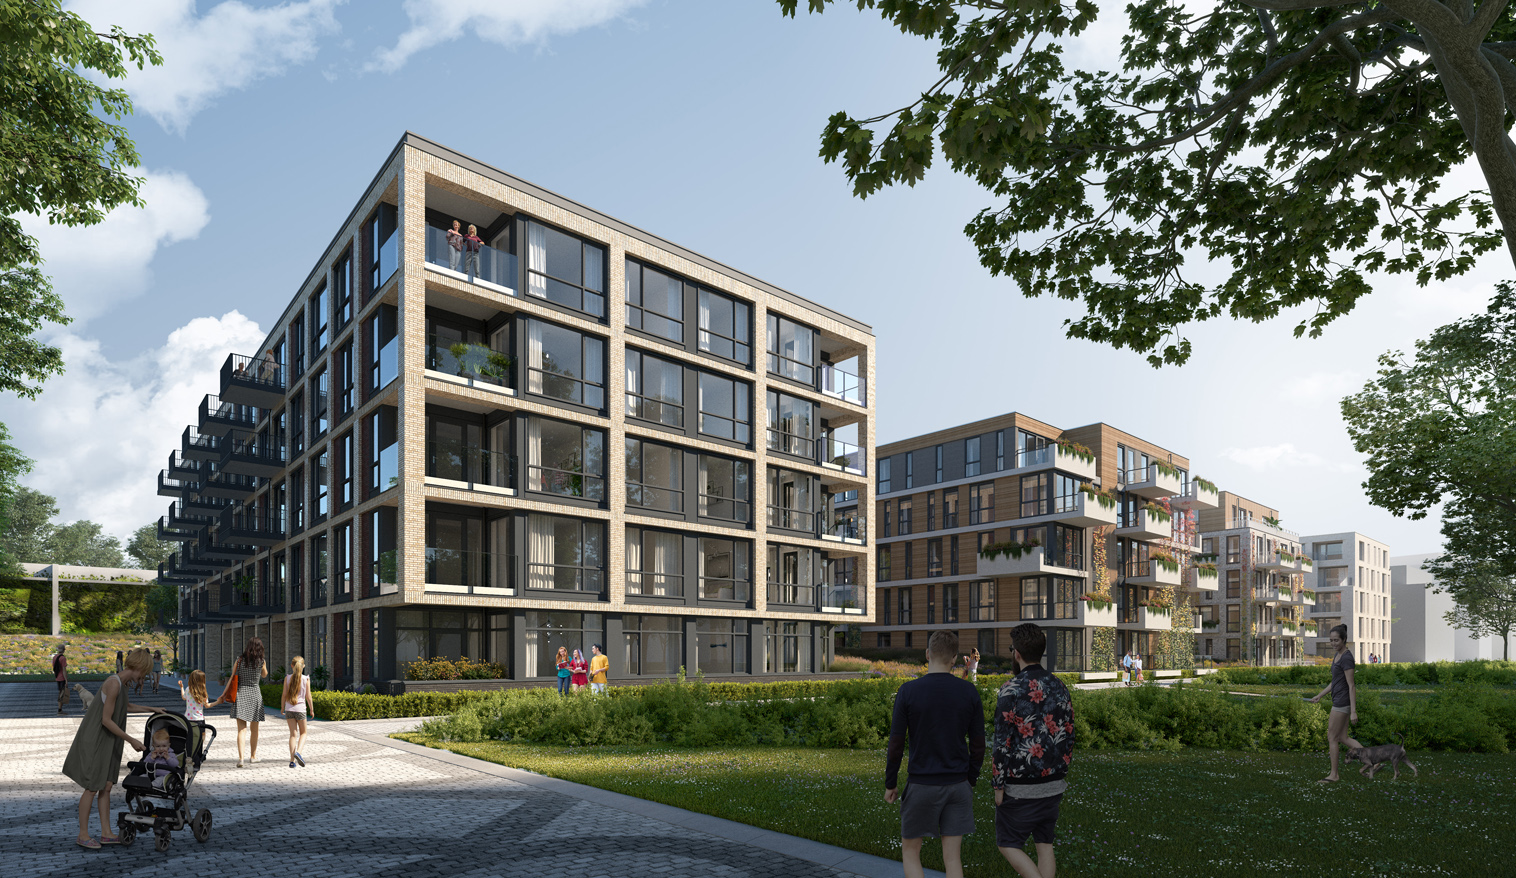 00 OPL Architecten_Cartesius Utrecht- header 1516×878-72dpi